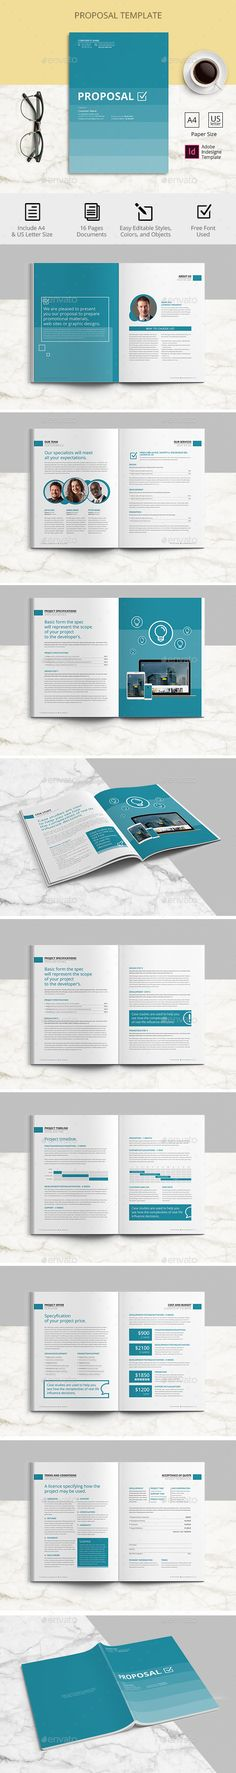 <center>PROPOSAL Creative and modern proposal template</center>Editable Indesign files (. Invoice Design Template, Stationery Templates, Indesign Templates, Graphic Design Templates, Newsletter Templates, Stationery Design, Brochure Design, Brochure Template, Brochure Ideas